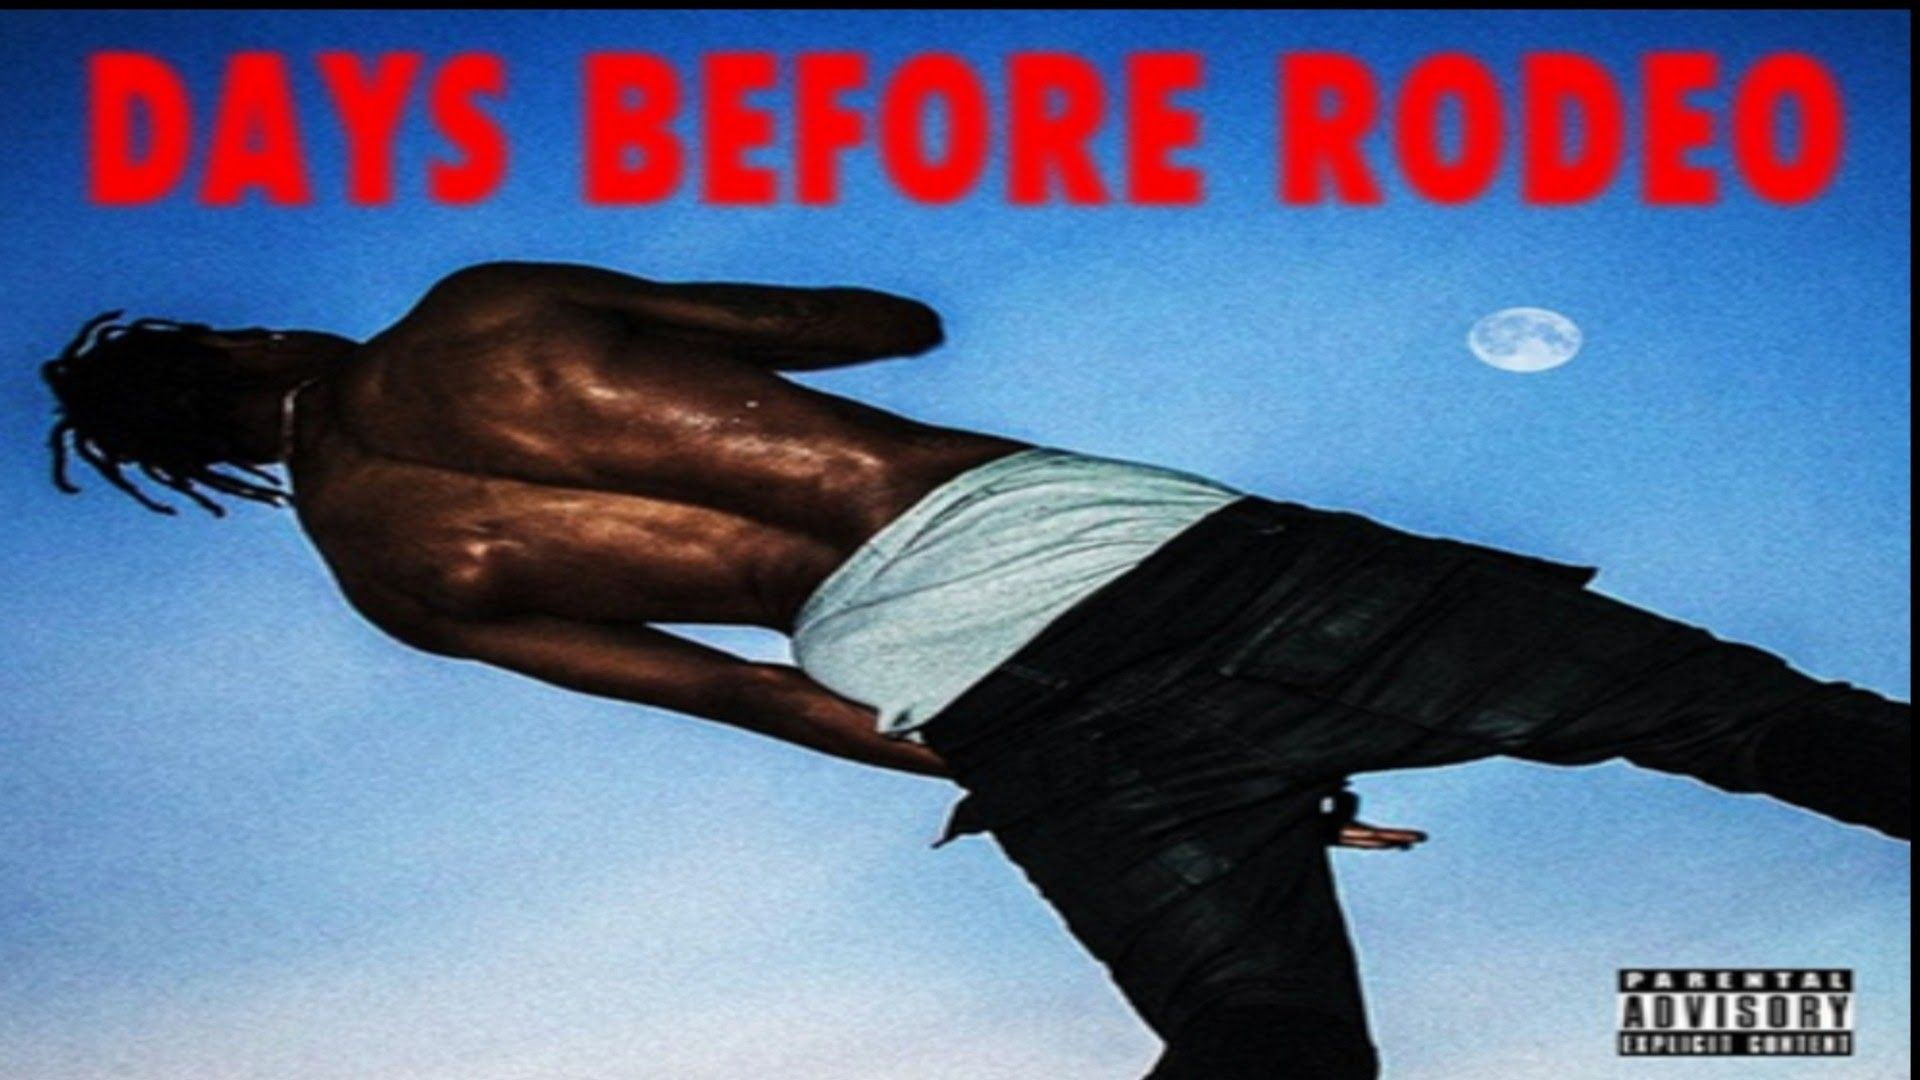 Days Before Rodeo Wallpapers   Top Days Before Rodeo 1920x1080